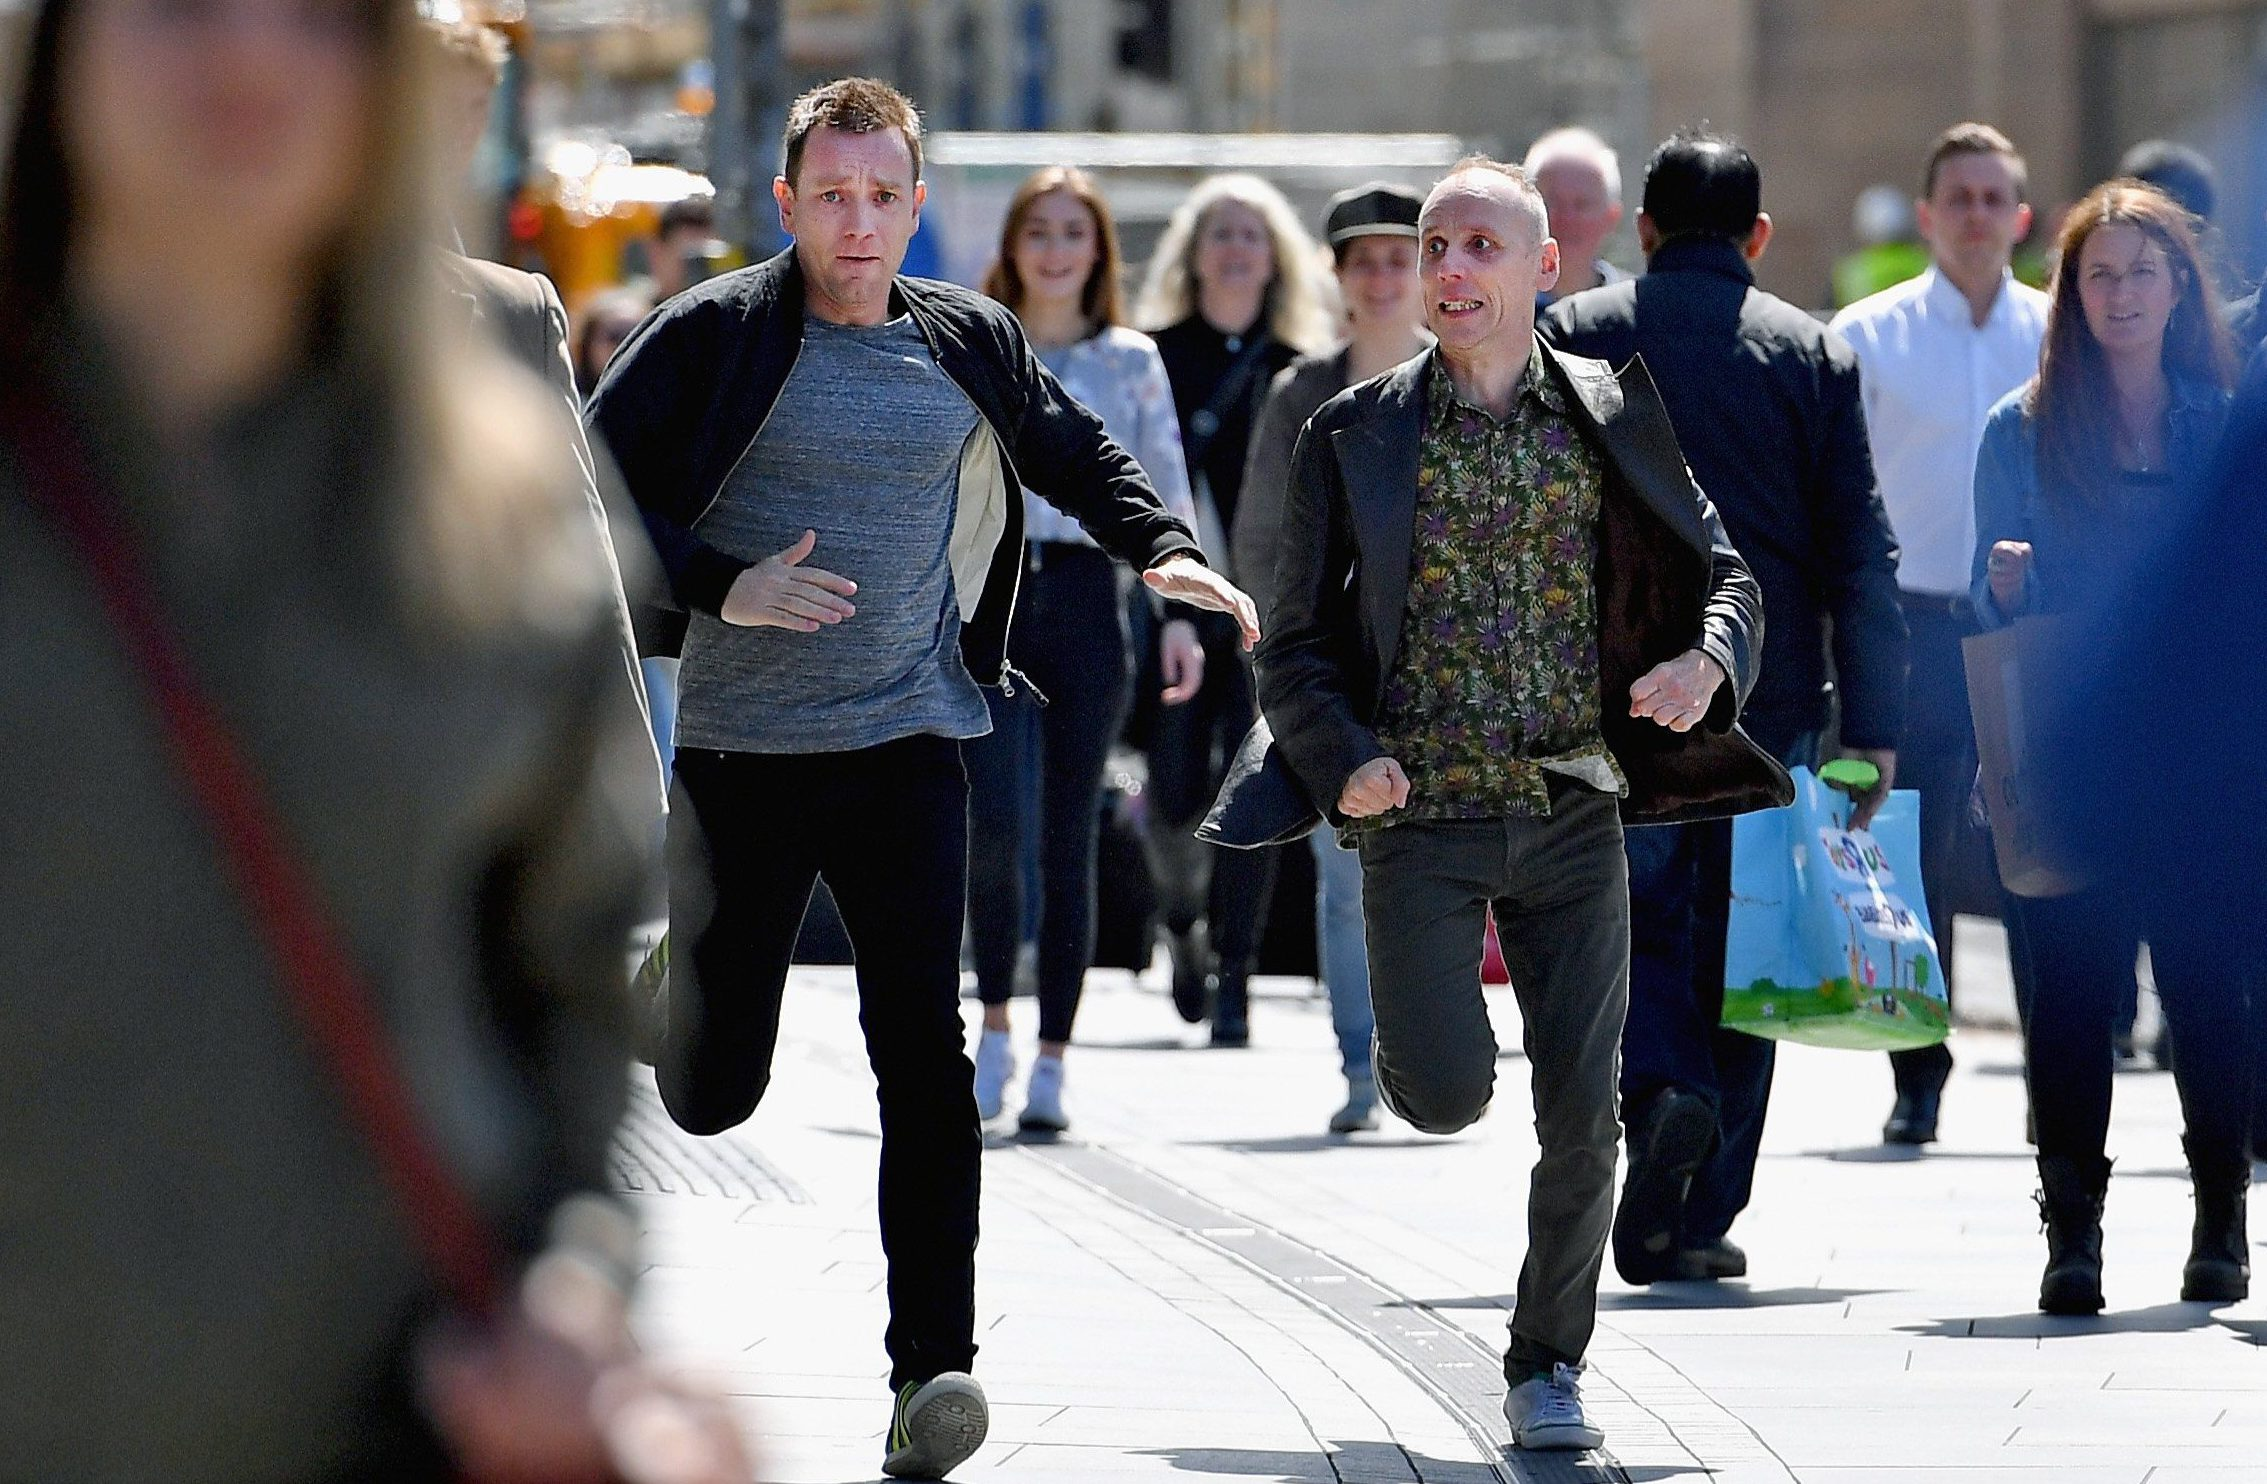 EDINBURGH, SCOTLAND - MAY 11: Actors Ewan McGregor and Ewan Bremner run on the set of the Trainspotting film sequel on Princess Street on July 13, 2016 in Edinburgh, Scotland. The long awaited Trainspotting 2 is being filmed in Edinburgh and Glasgow, 20 years after the original was released and it will also see the cast from the first film returning including Ewan McGregor, Jonny Lee Miller and Robert Carlyle. (Photo by Jeff J Mitchell/Getty Images)